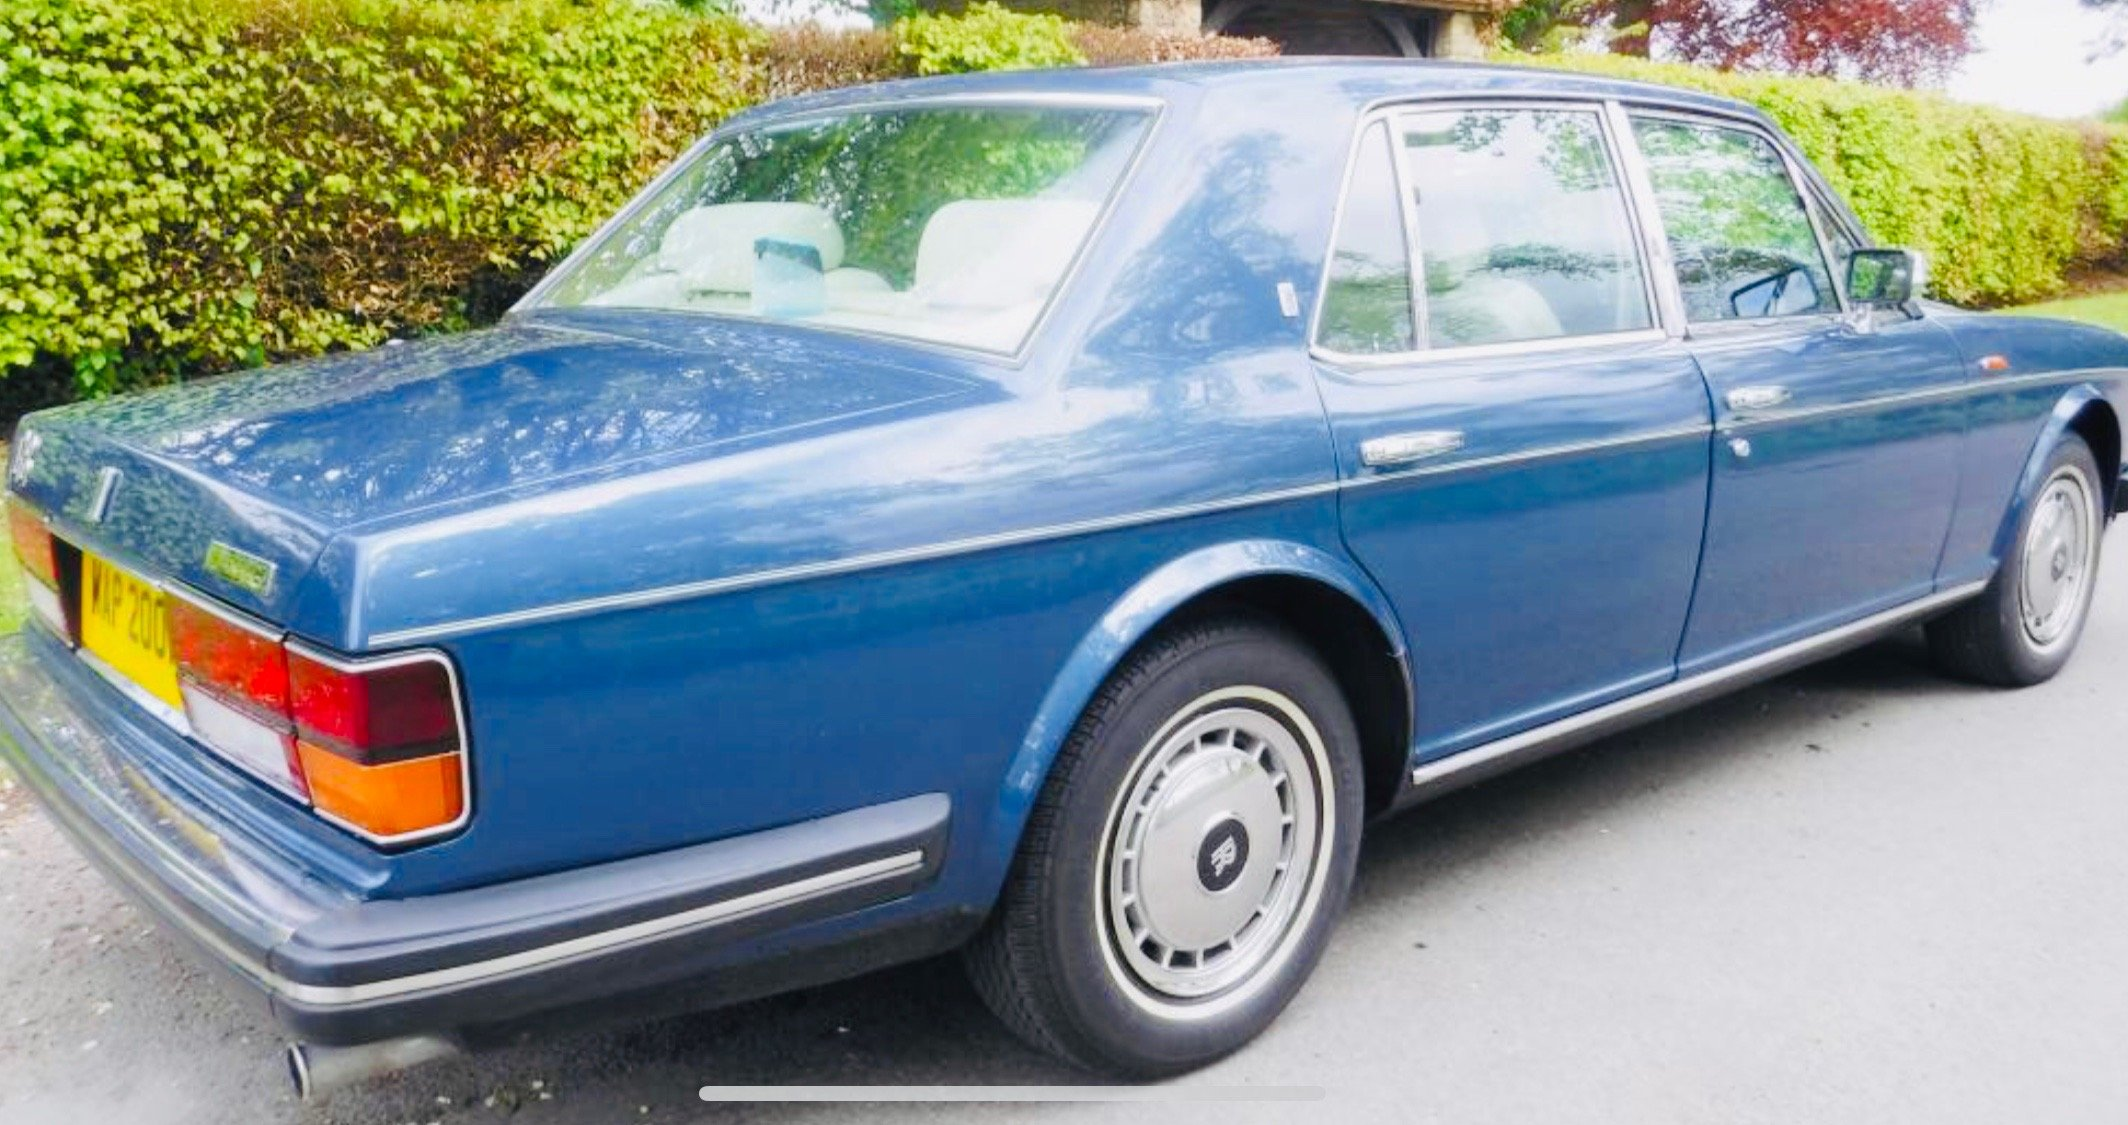 1991 91 SILVER SPIRIT II - VERY LOW MILEAGE, SUPERB CONDITION SOLD (picture 3 of 6)